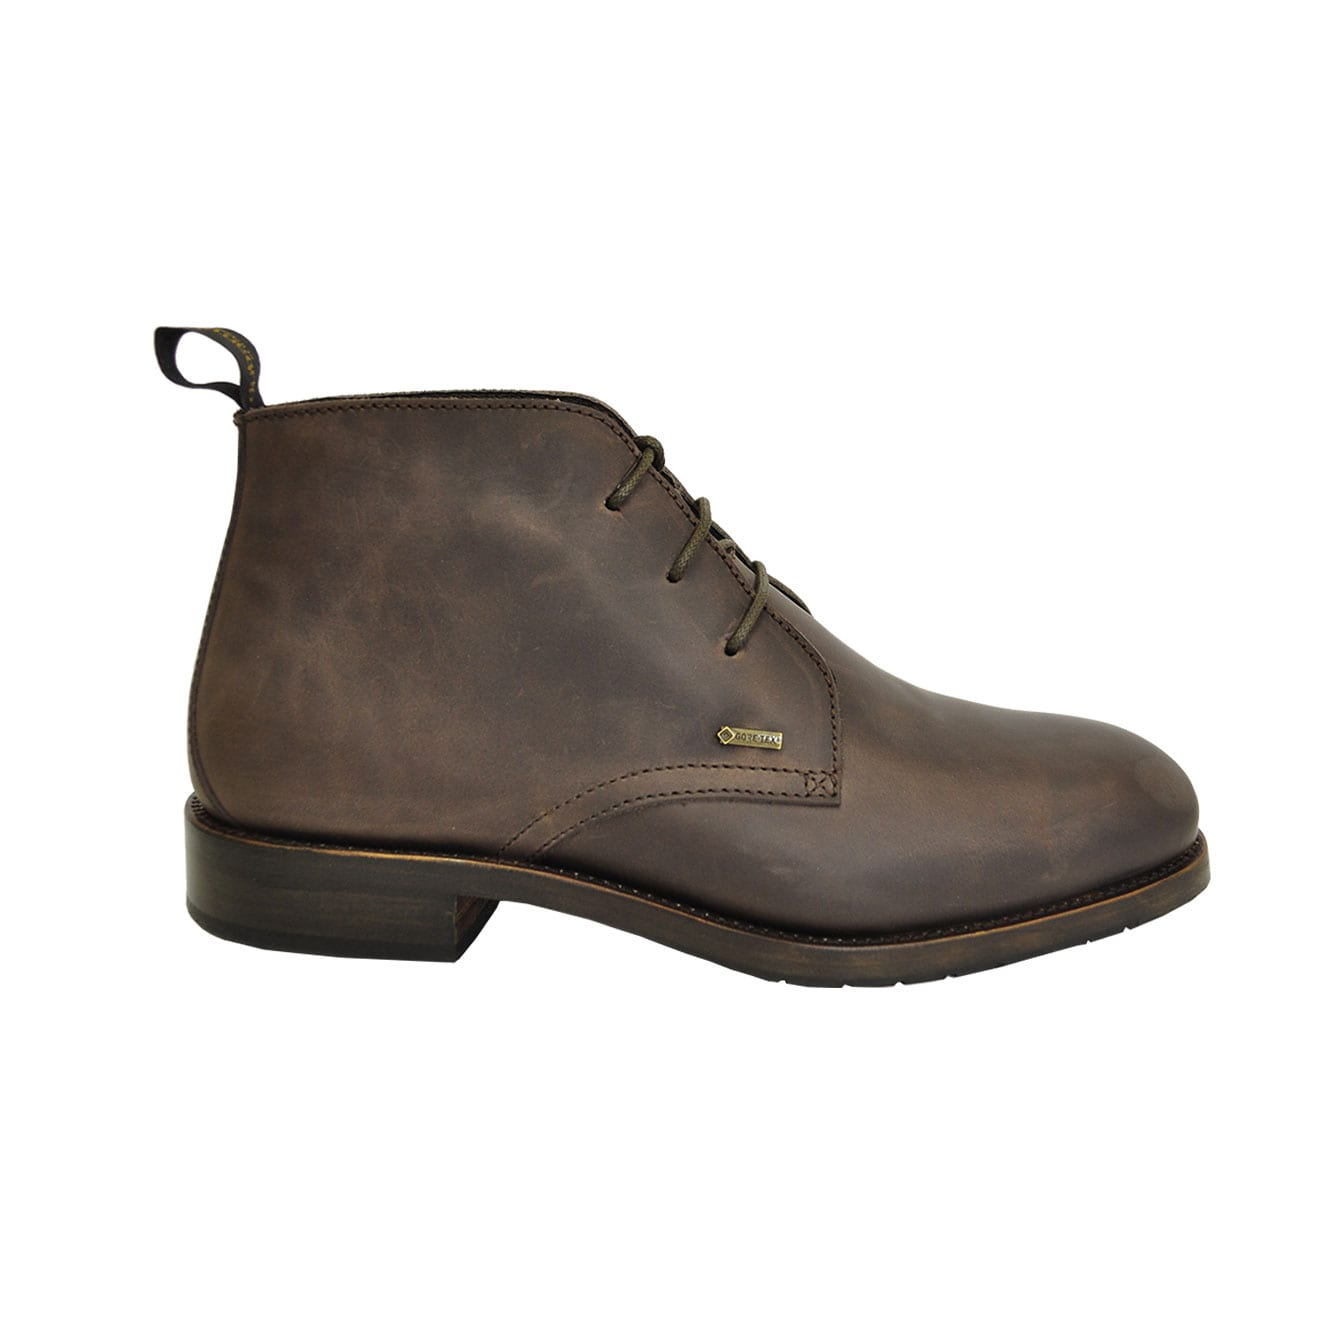 429cf84f806 Dubarry Waterville Gortex Desert Boot Old Rum